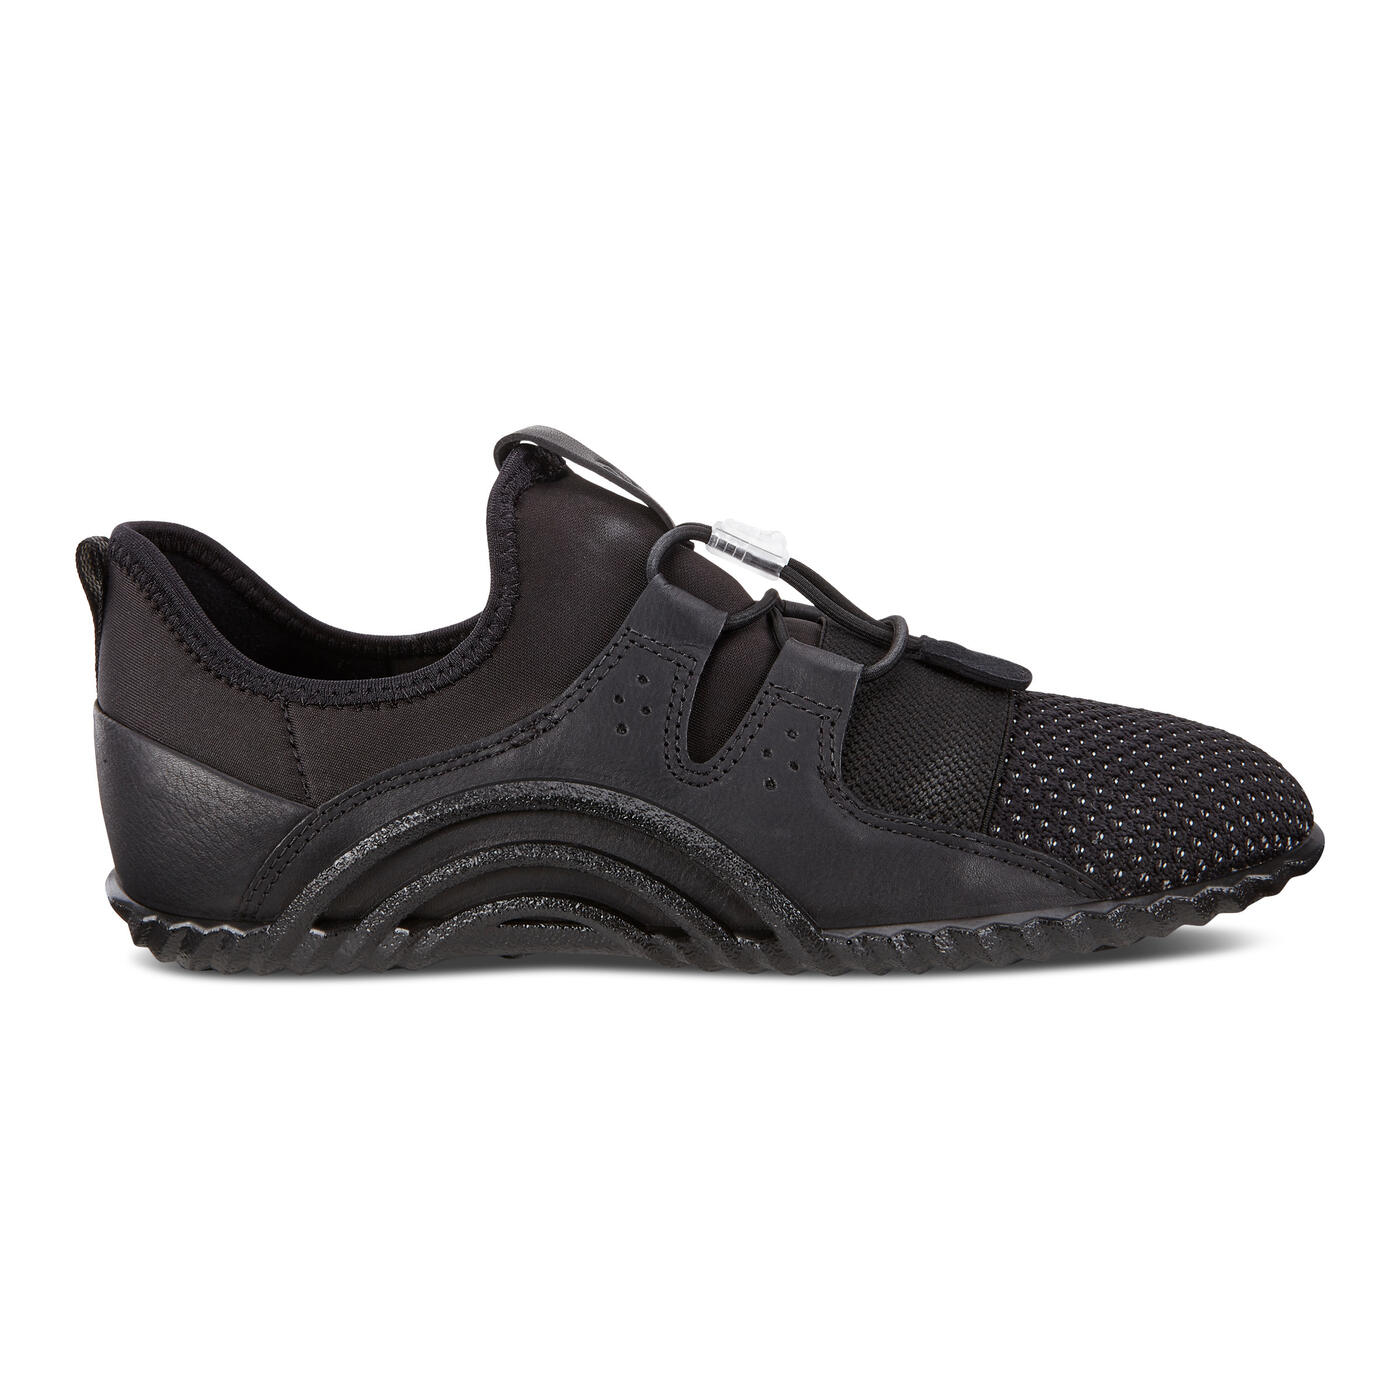 ECCO VIBRATION 1.0 Shoe